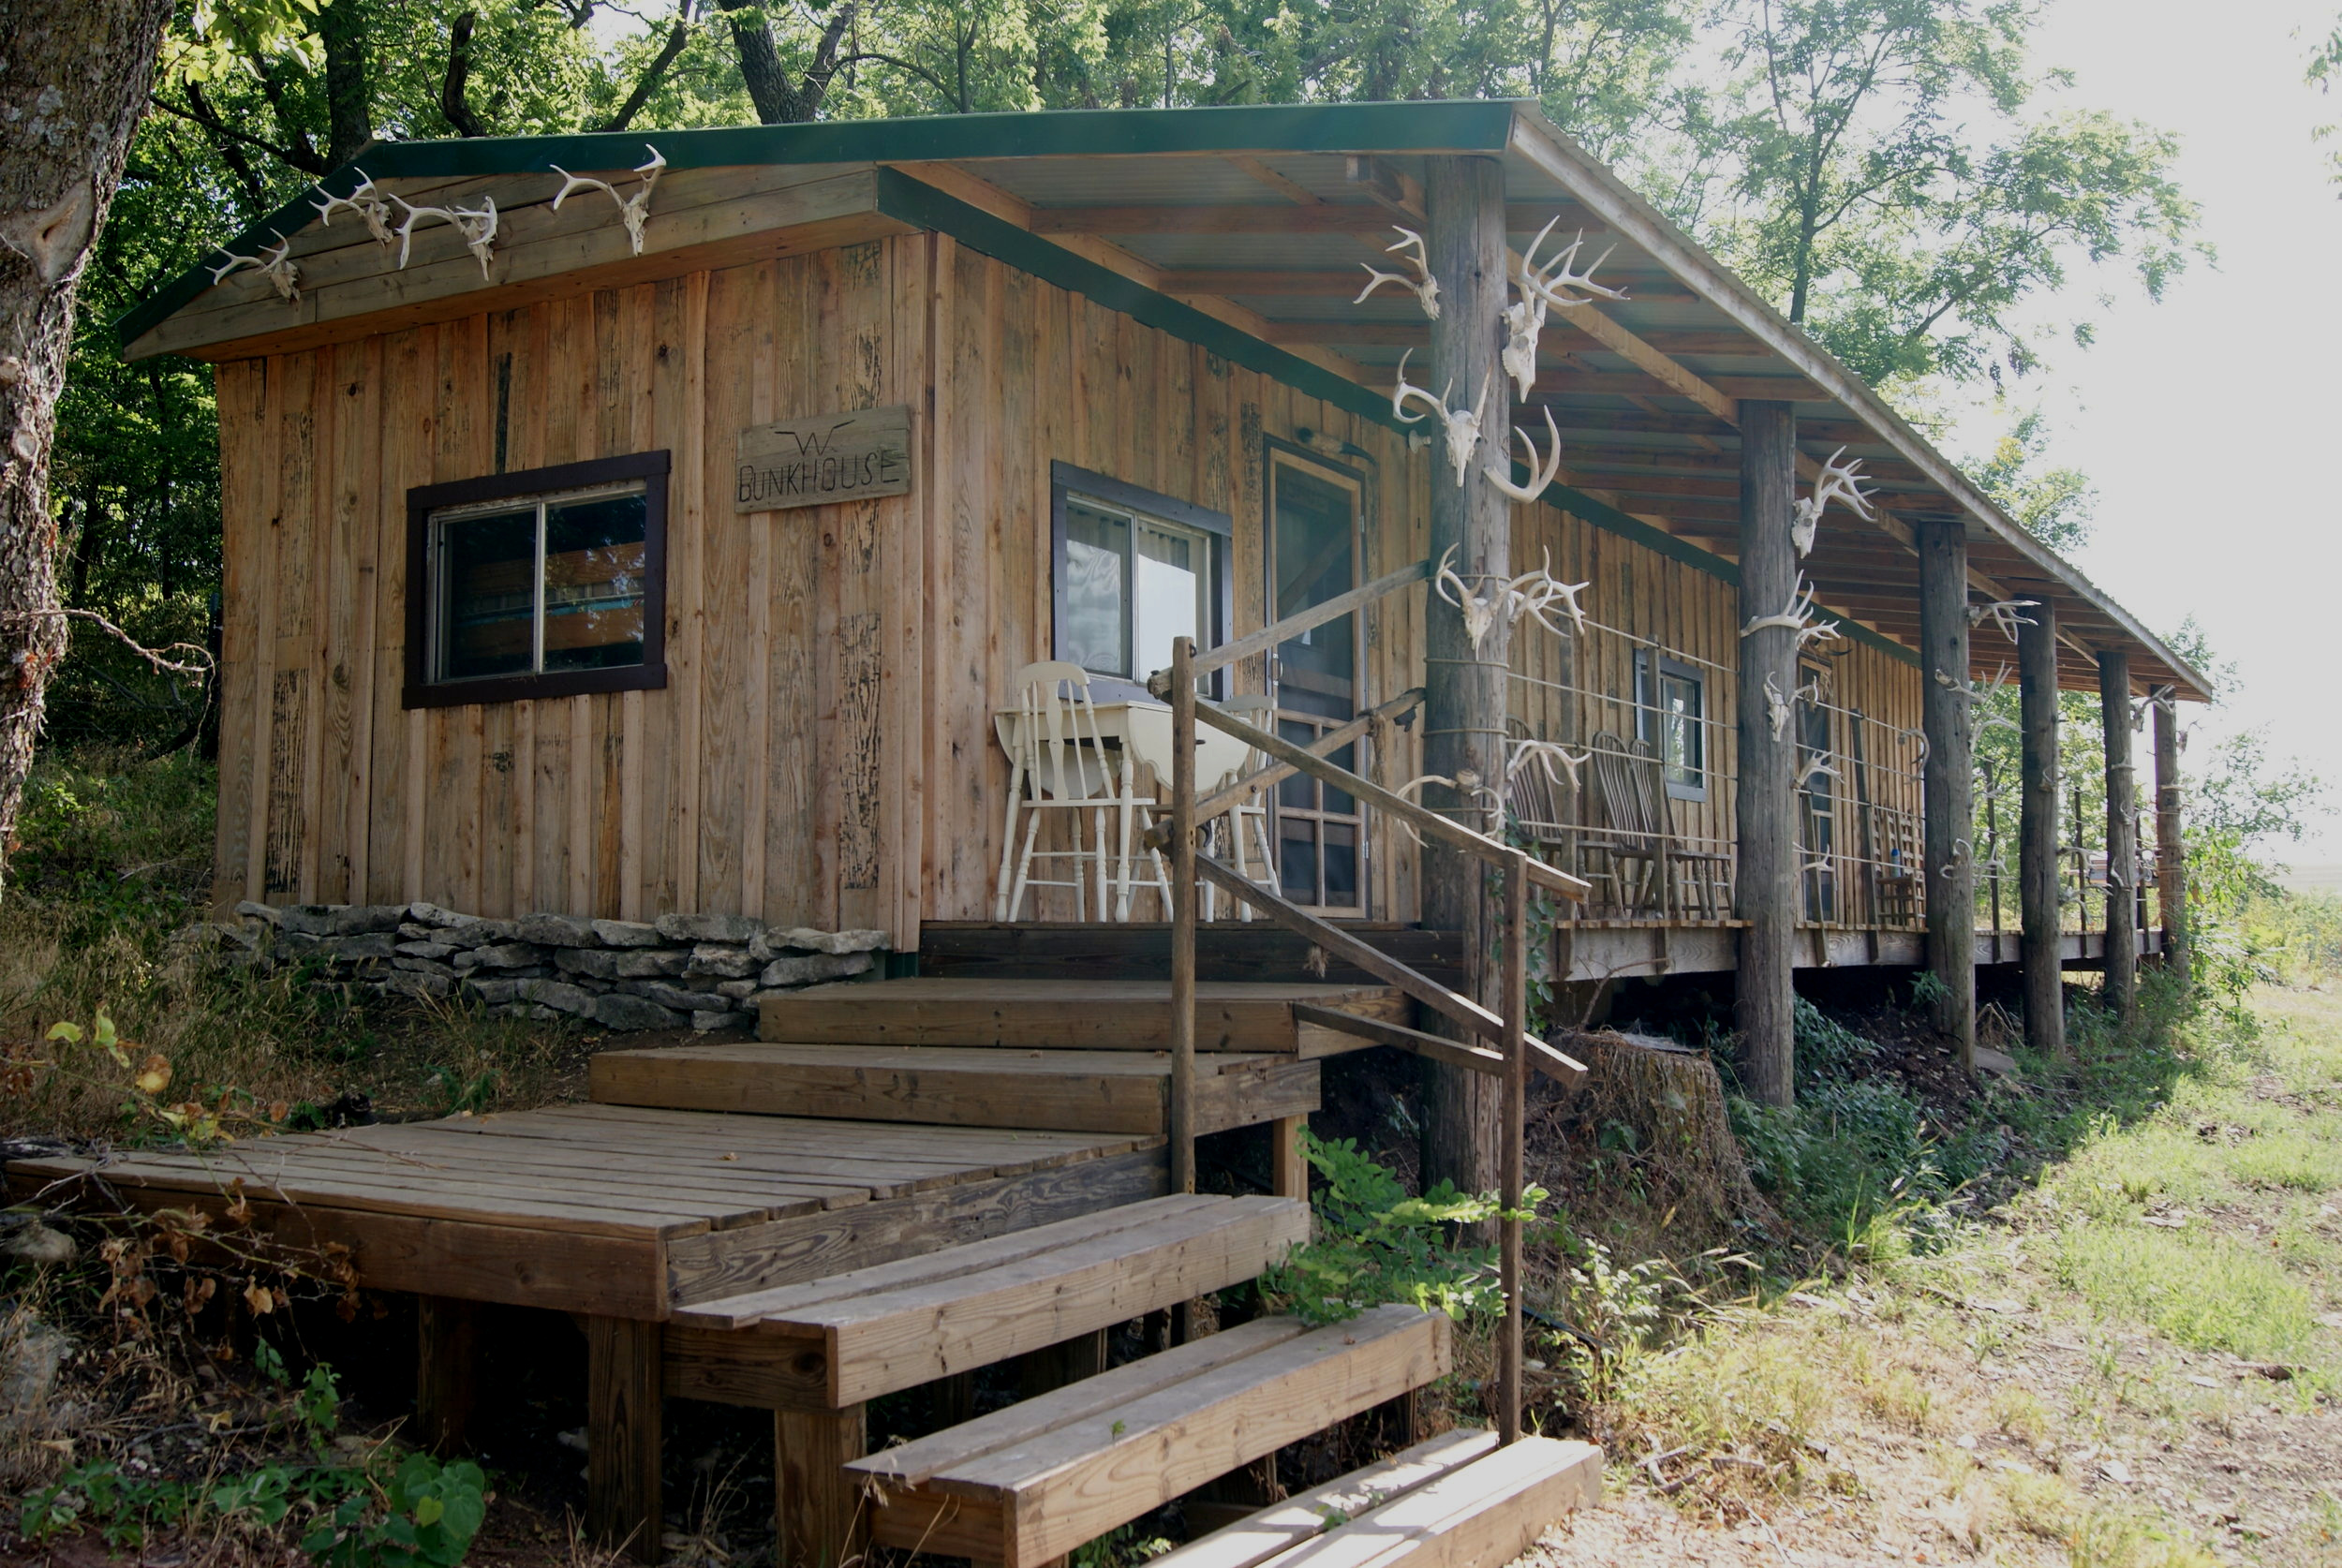 The Bunkhouse stairs and porch